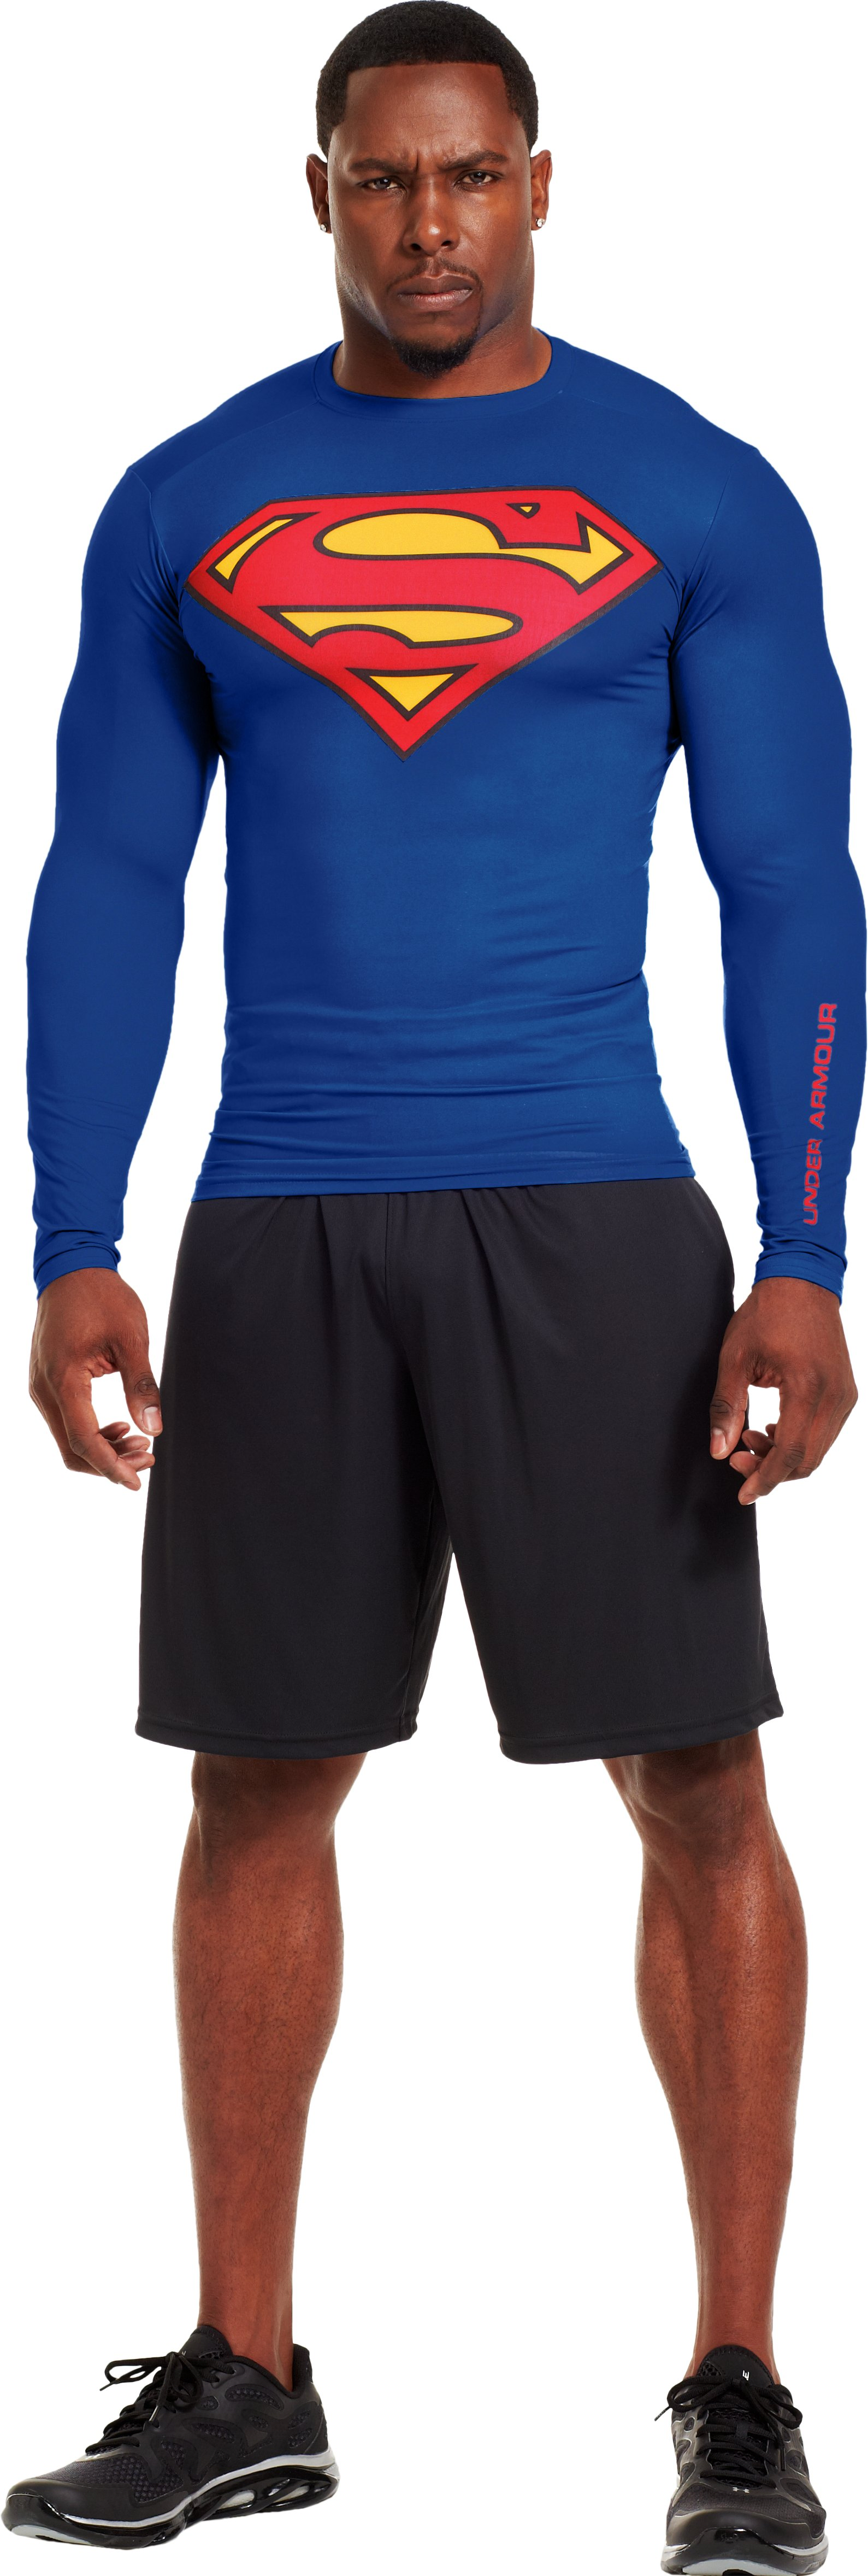 Men's Under Armour® Alter Ego Compression Long Sleeve Shirt, Royal, Front